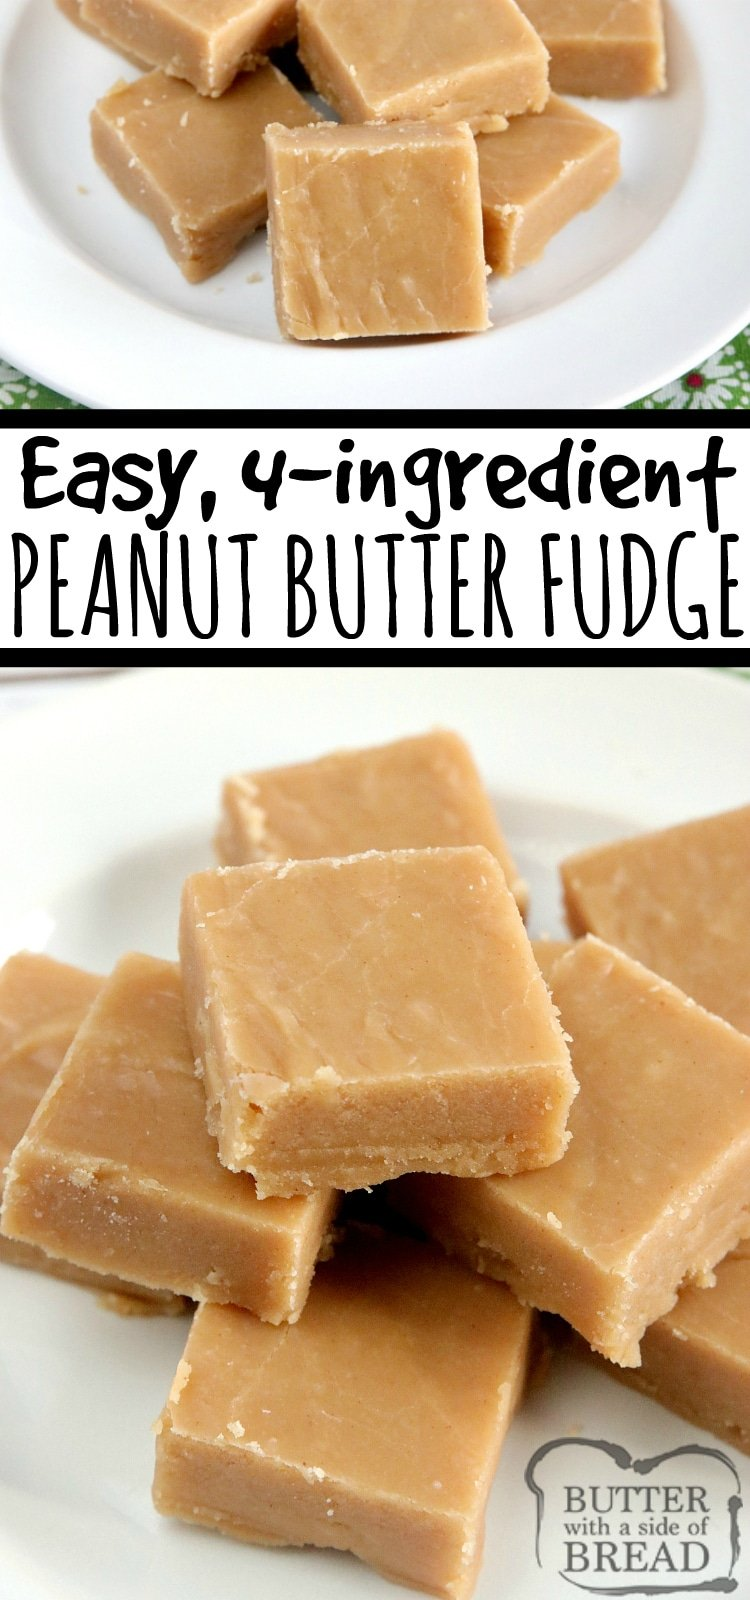 Peanut Butter Fudge is easily made with only 4 ingredients, no candy thermometer needed! This easy fudge recipe is made with peanut butter, sugar, milk and vanilla extract- that's it!